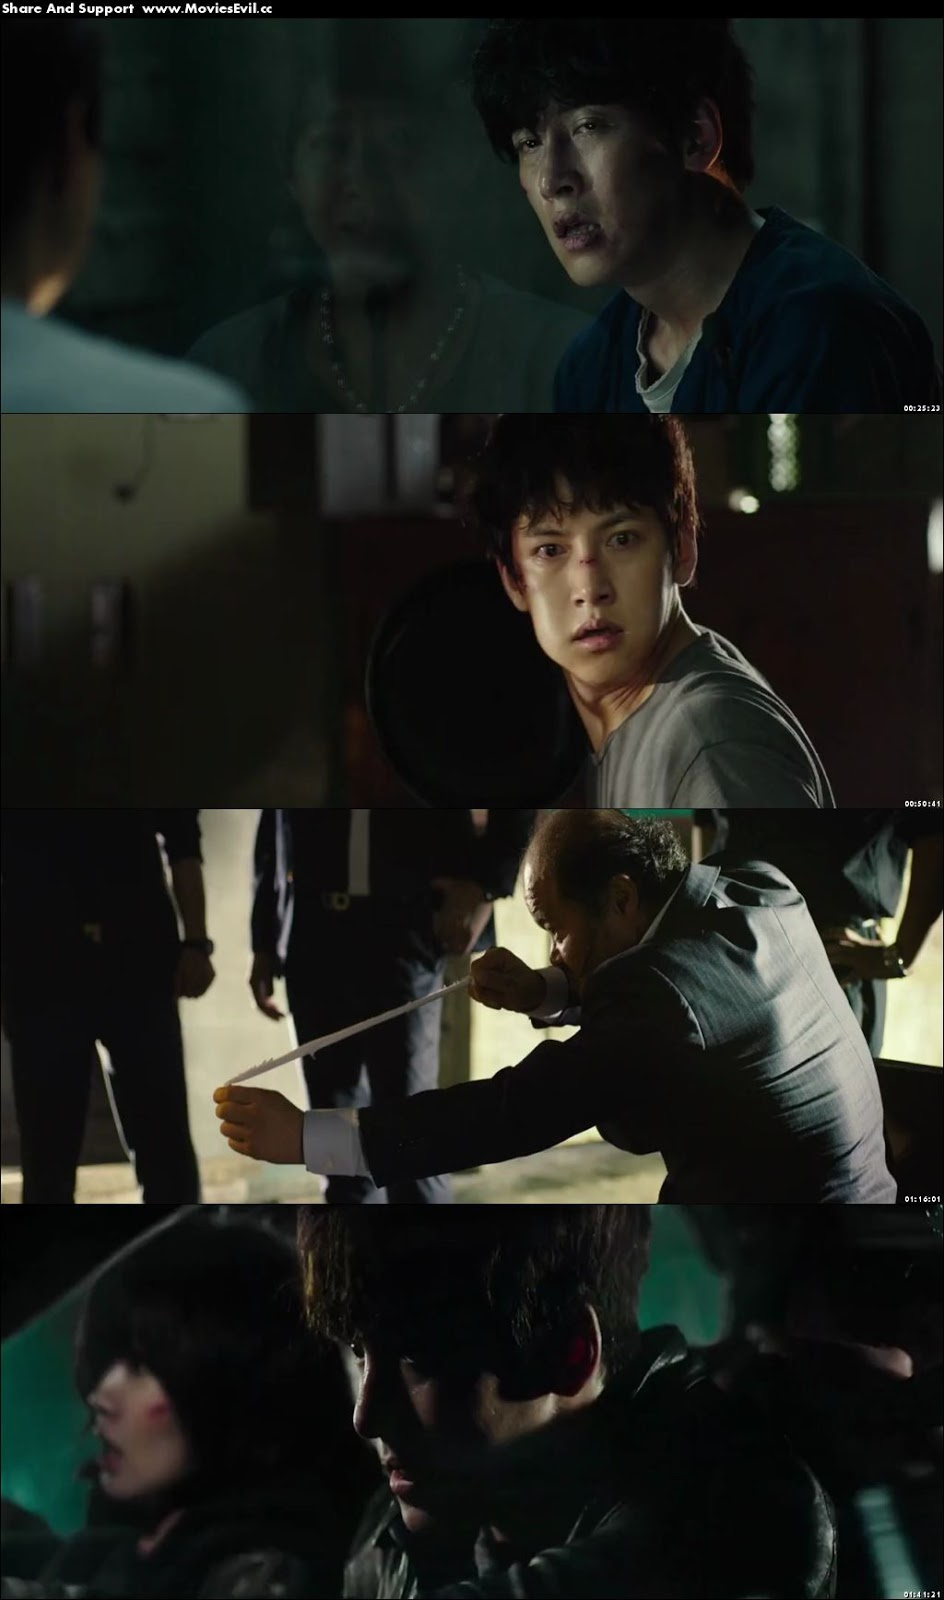 Fabricated City 2017 Dual Audio 720p BluRay ESubs,Fabricated City 2017 full movie dual audio download,Fabricated City 2017 direct link download,Fabricated City 2017 300 mb download,Fabricated City 2017 torrent download,Fabricated City 2017 hindi dubbed download,Fabricated City 2017 with english subtitle download